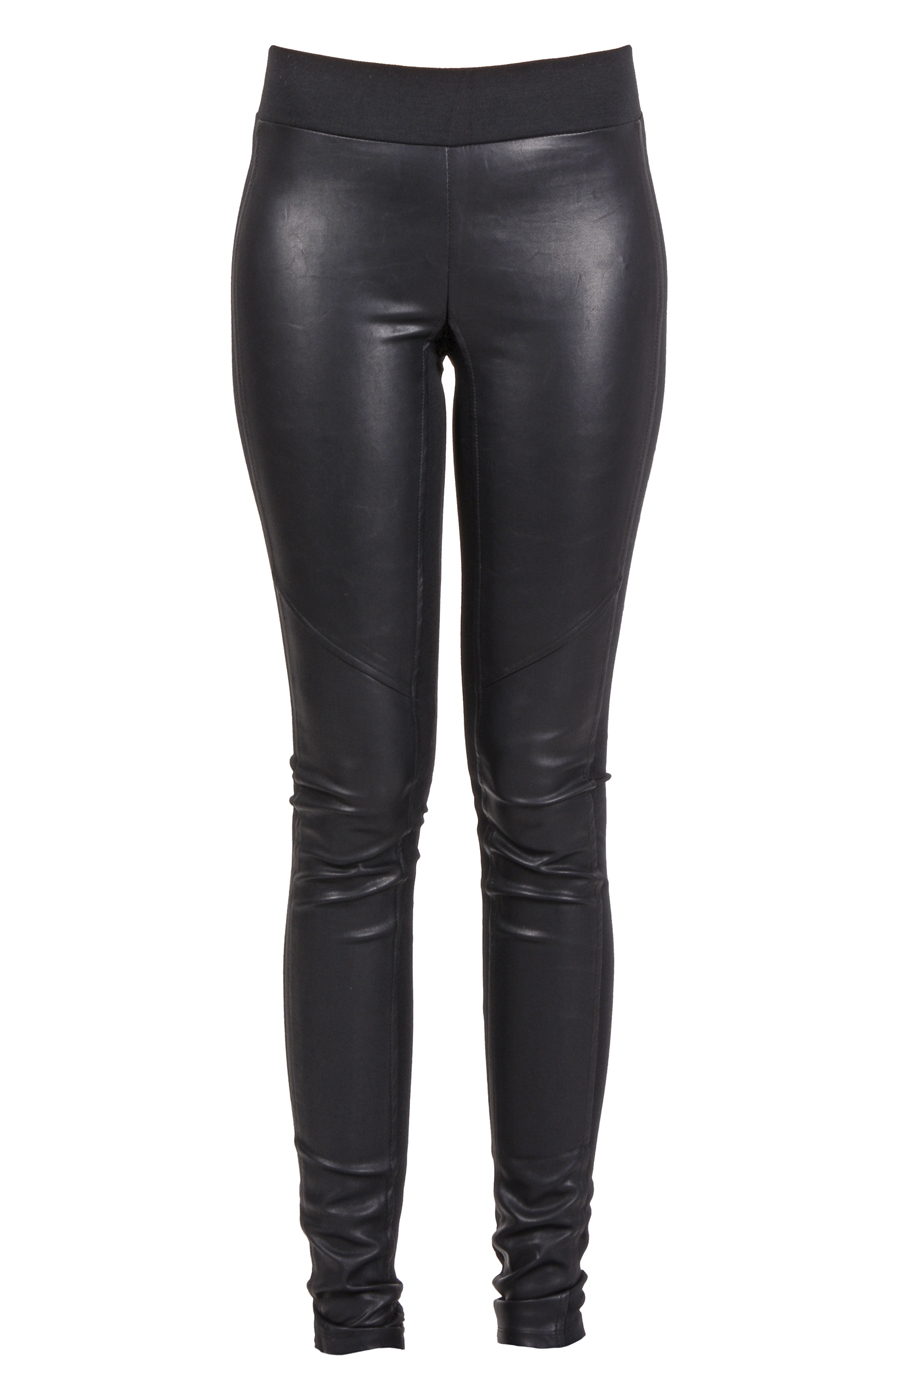 SWEEWË TALIA Black Eco-Leather Leggings - CLOTHING | FASHION LEGGINGS | PRET-A-BEAUTE.COM